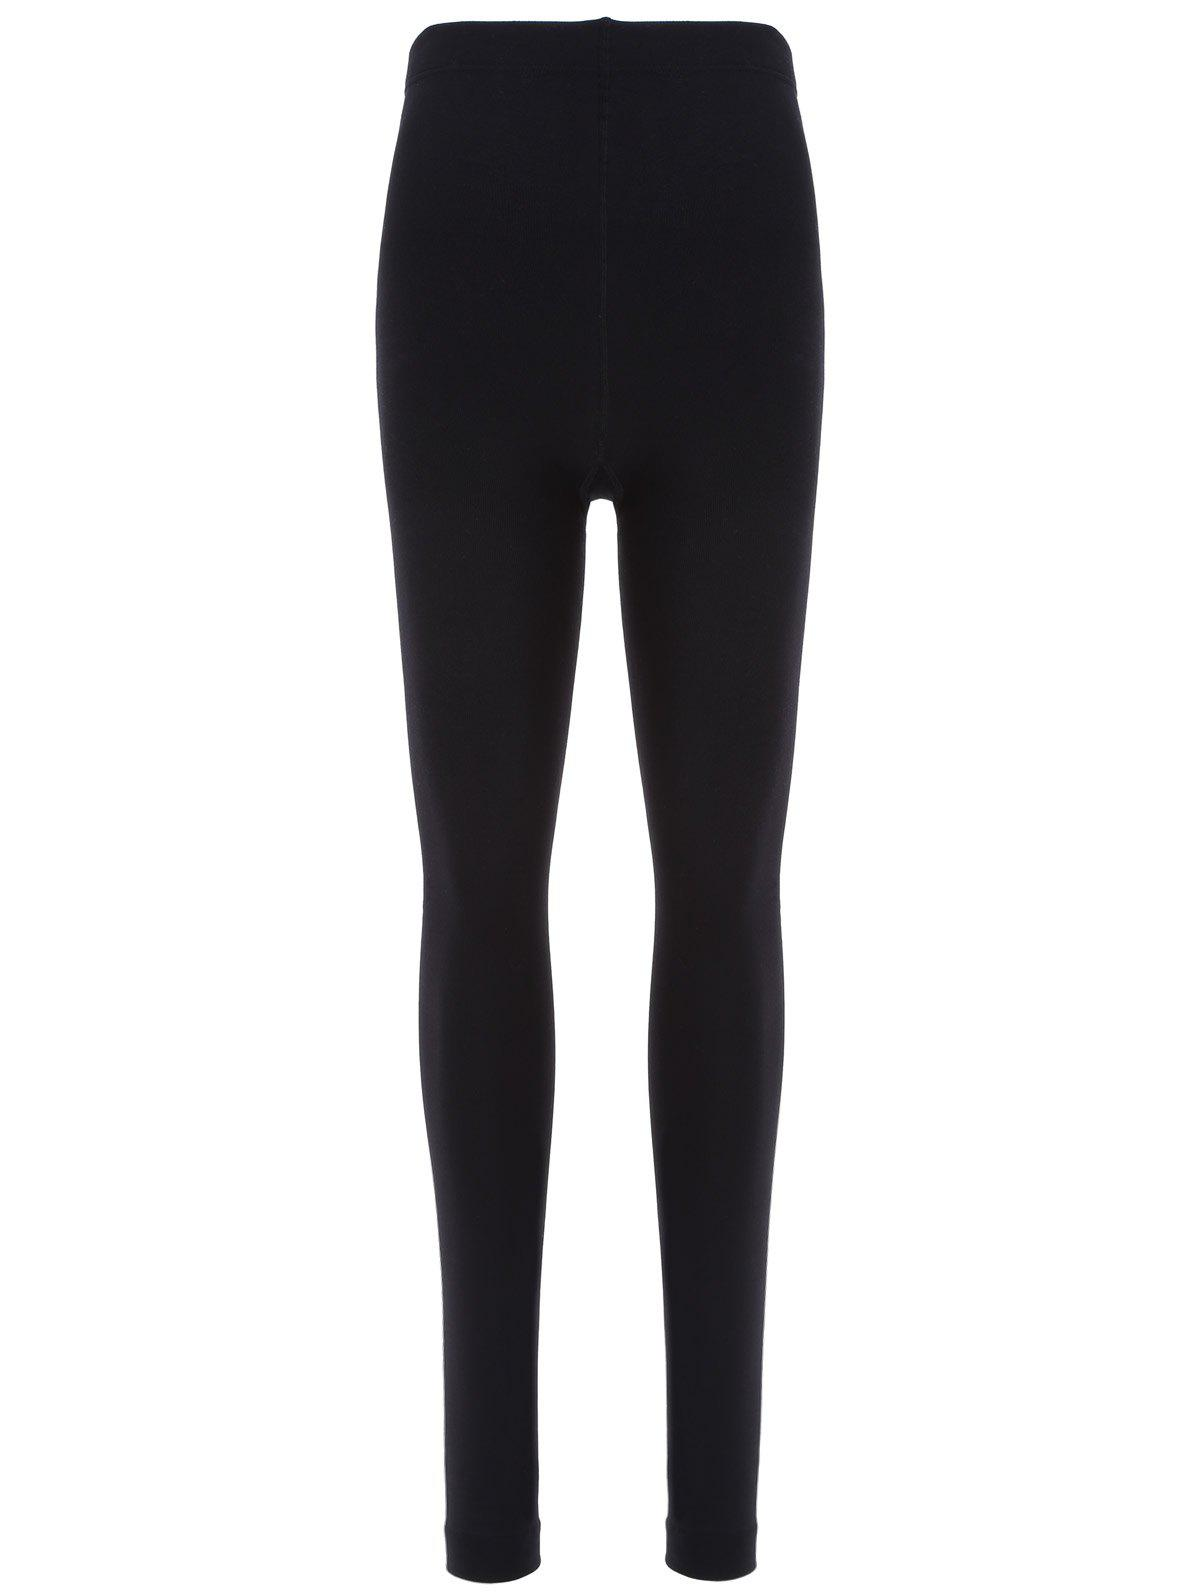 Footless Slim Leggings - BLACK ONE SIZE